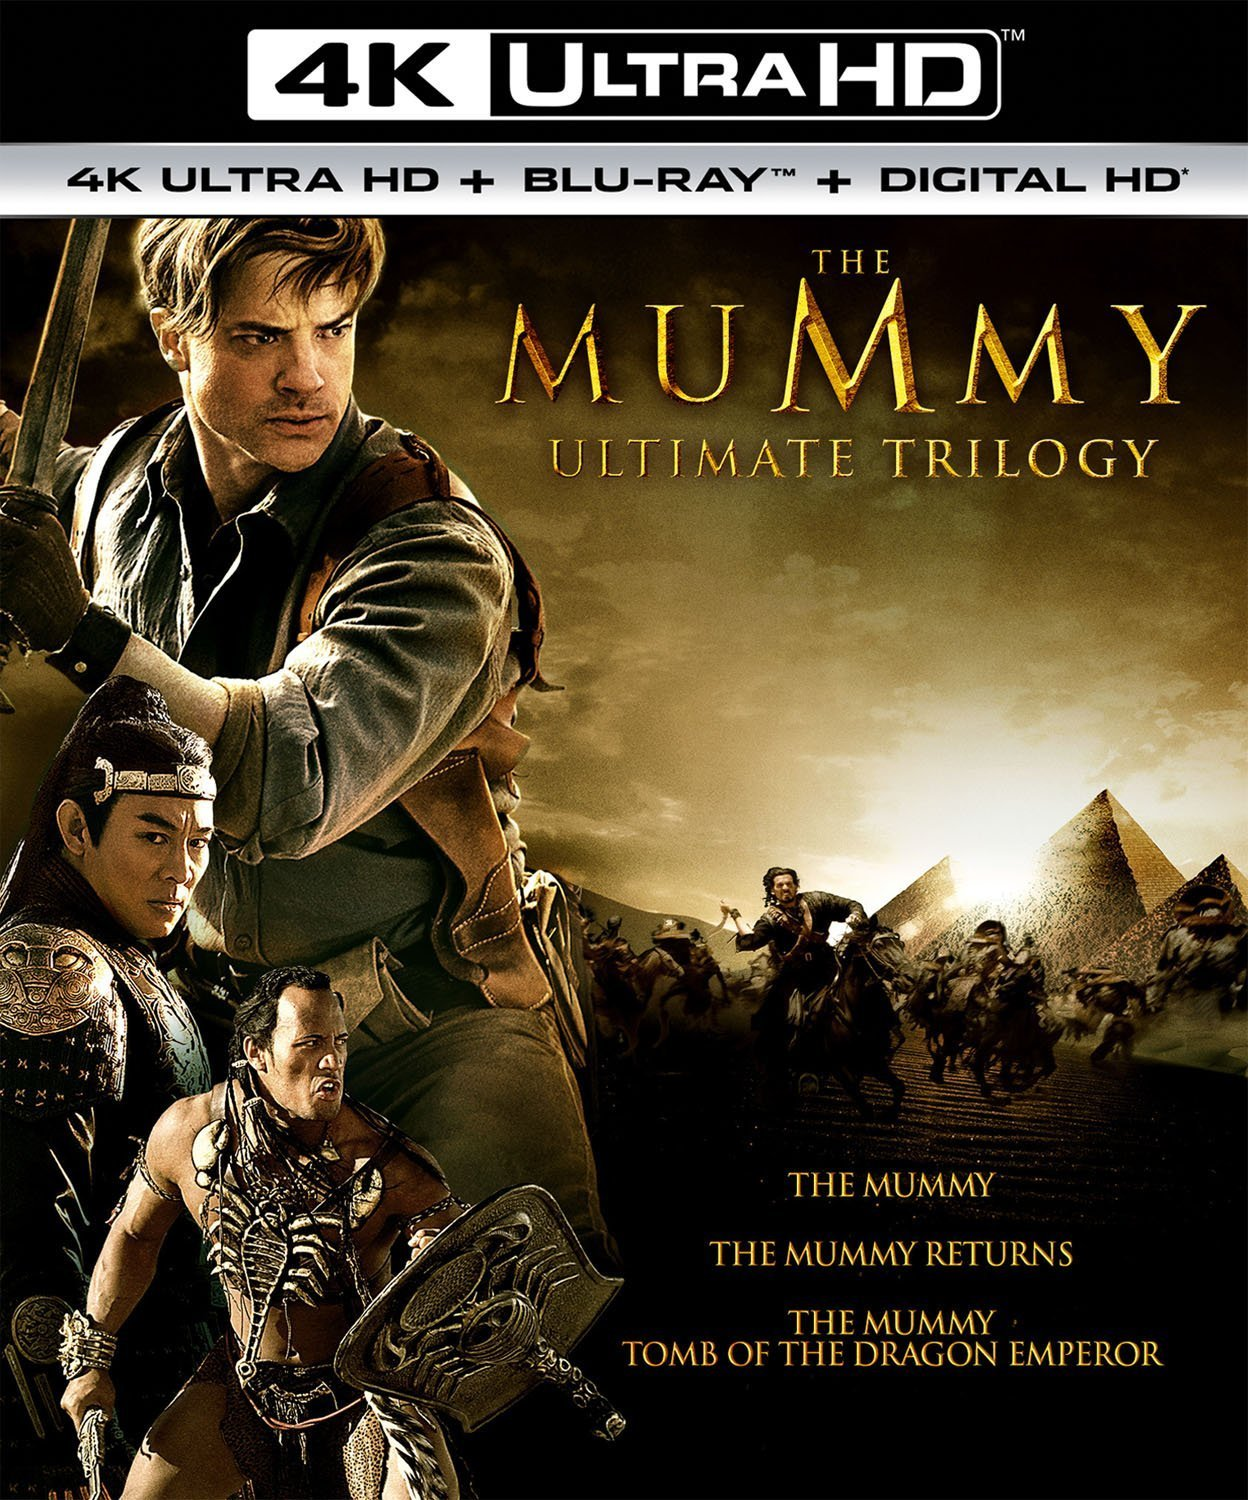 The Mummy Ultimate Trilogy  [4K Ultra HD + Blu-ray + Digital 6 Disc Set]